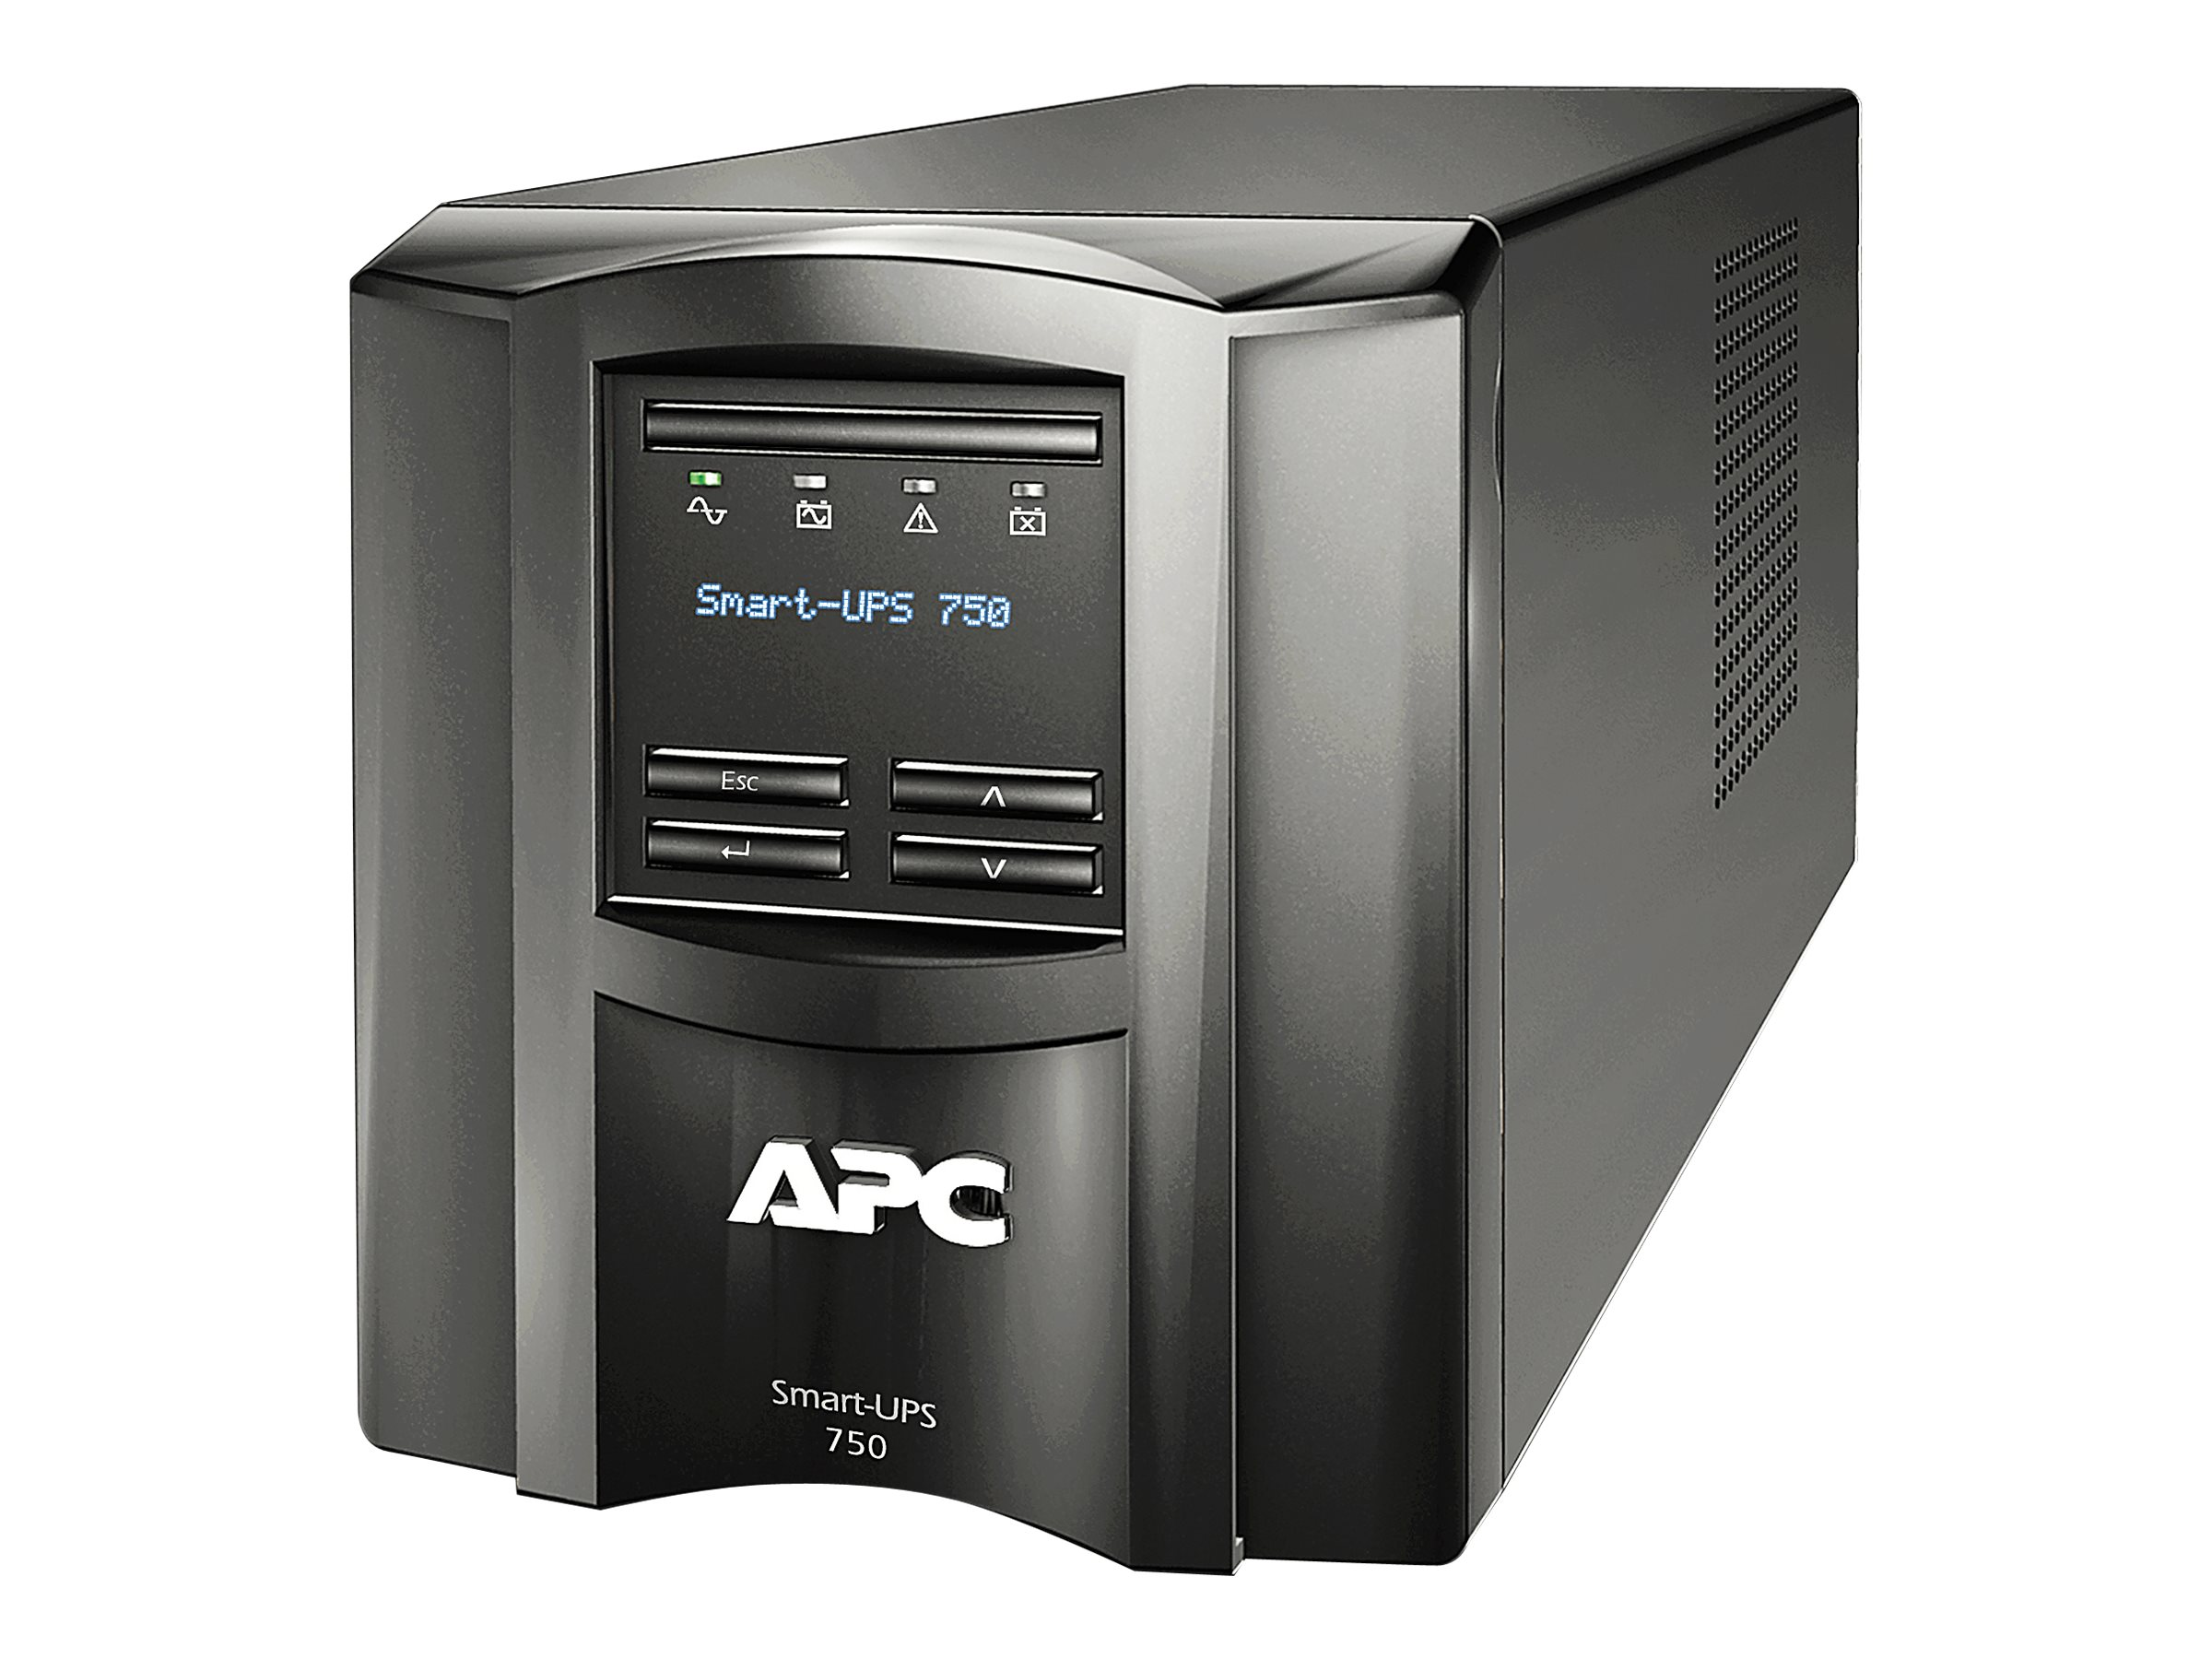 APC Smart-UPS 750VA 500W 120V LCD Tower UPS (6) 5-15R Outlets USB, EXCLUSIVE Buy - Save $15